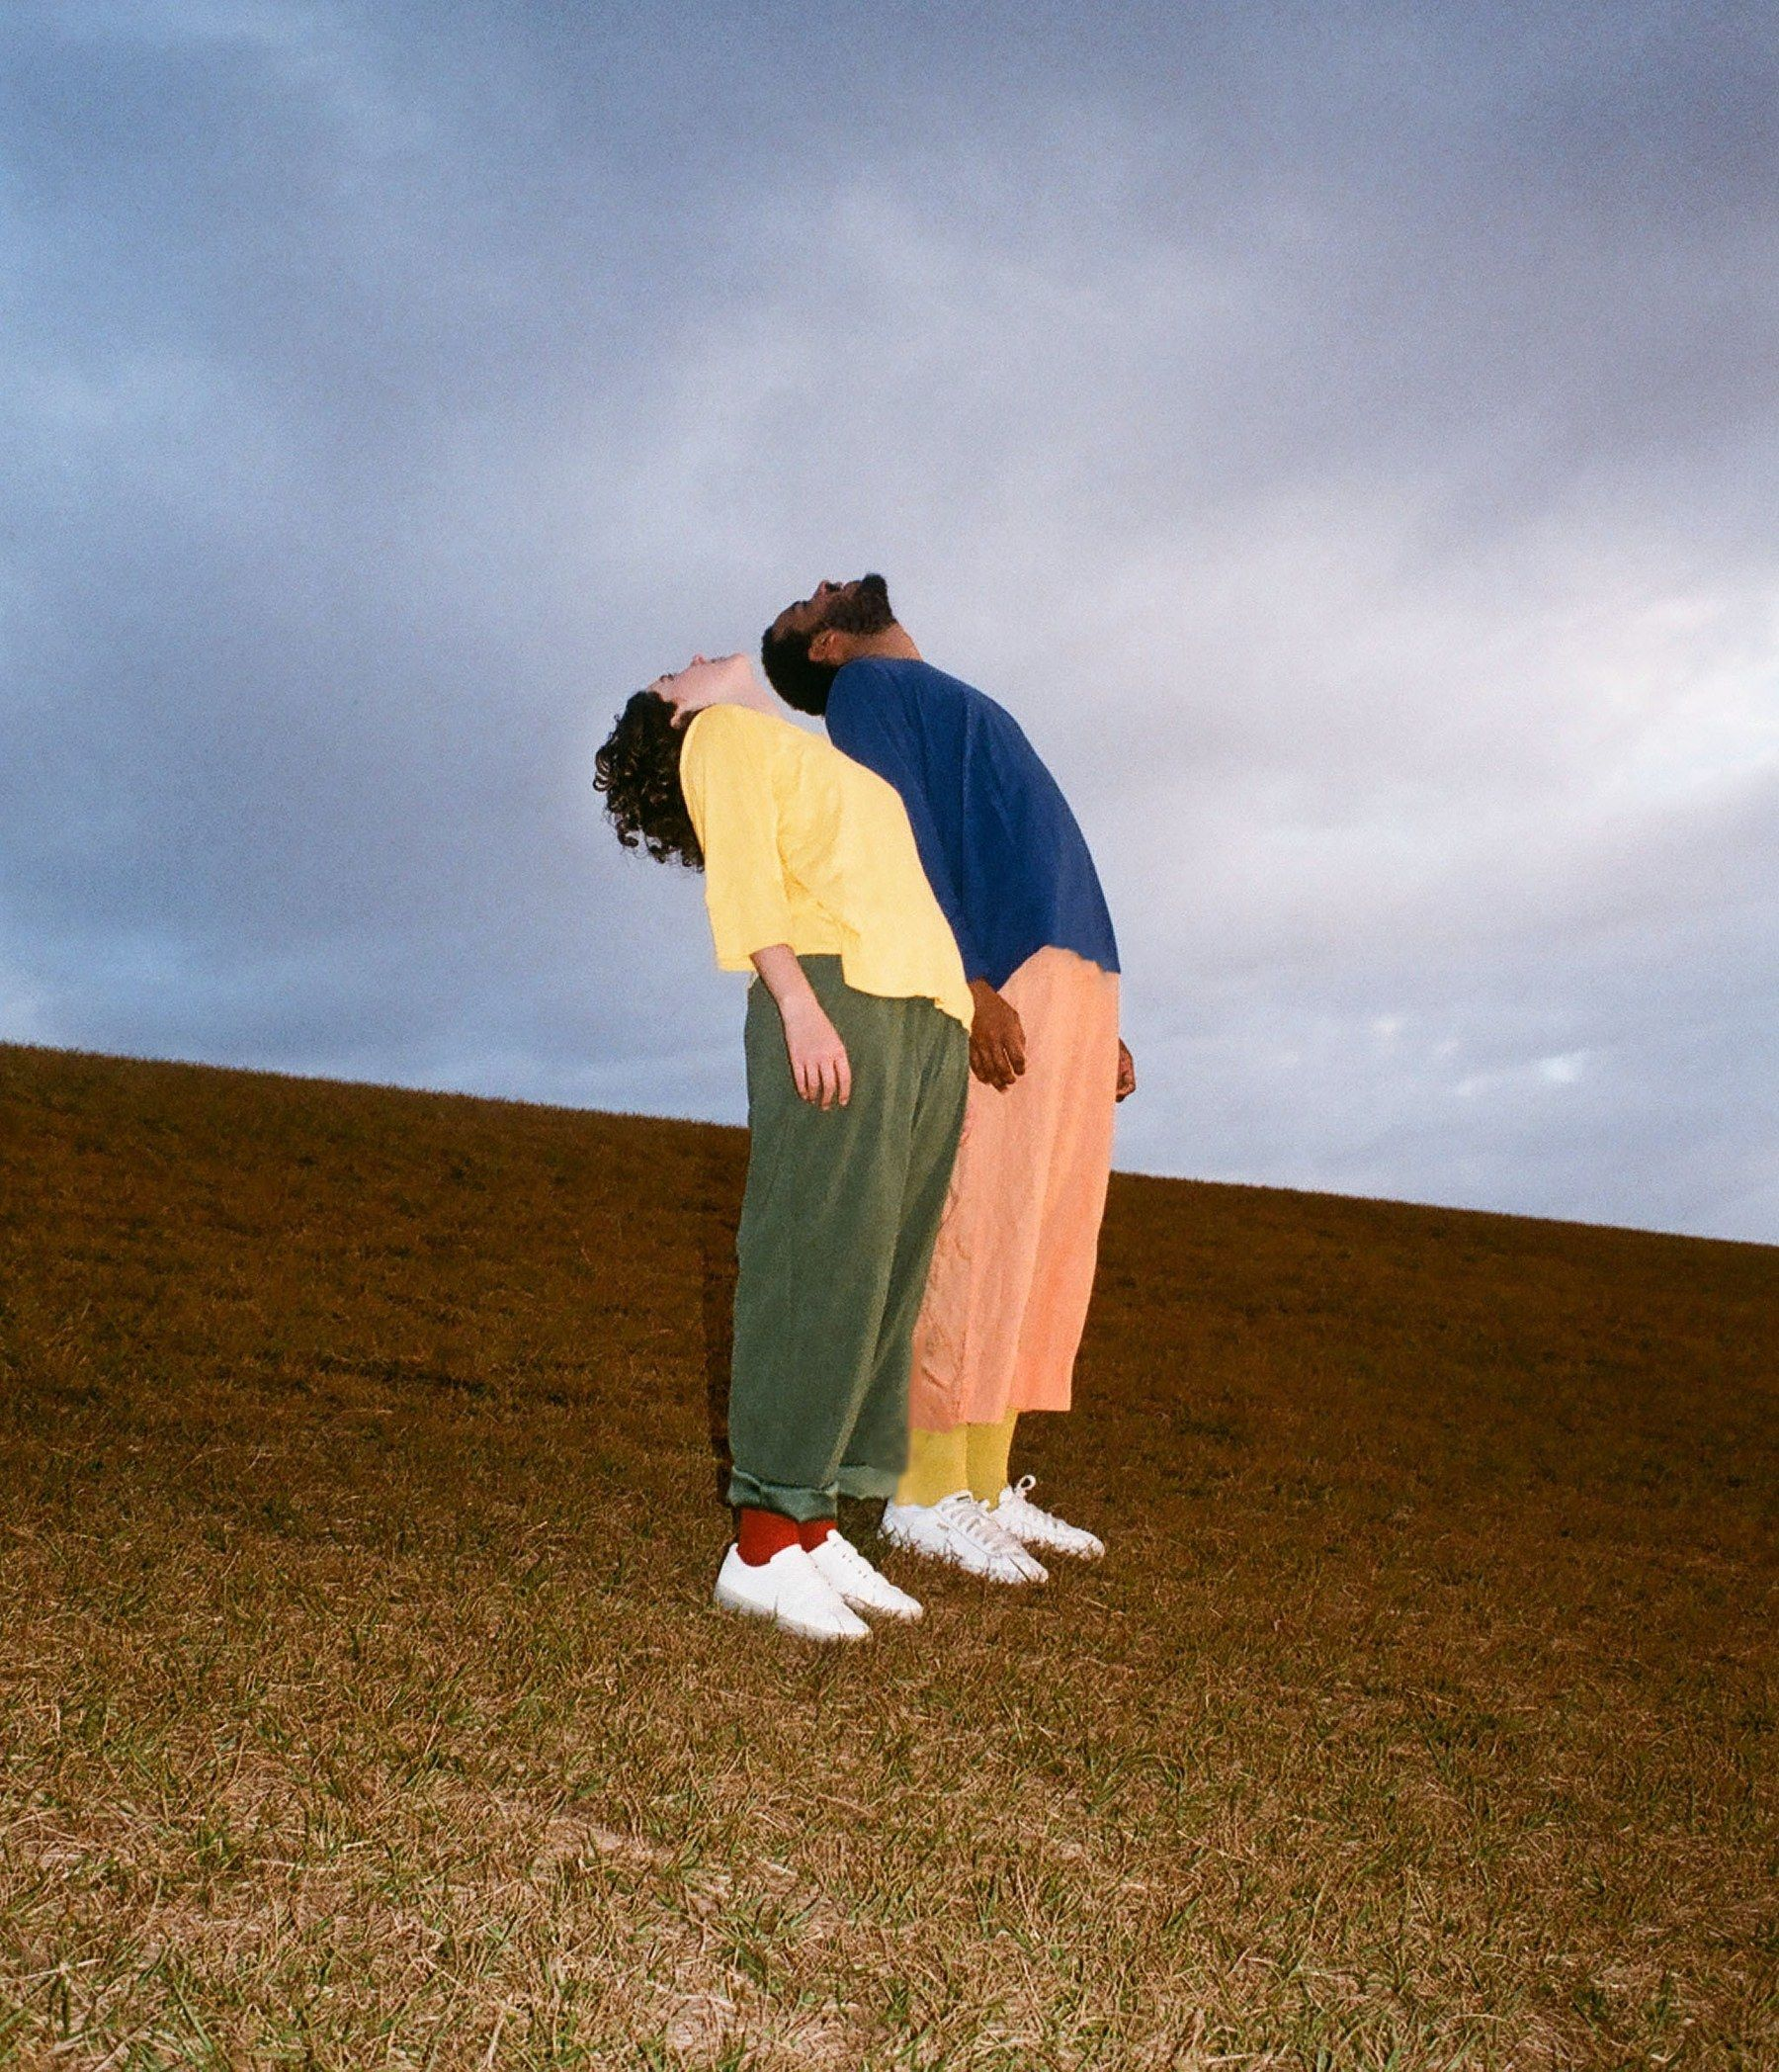 A Young Photographer Finds Inspiration in Jacob Lawrence, Fashion Photography, and Her Own Struggle with Depression